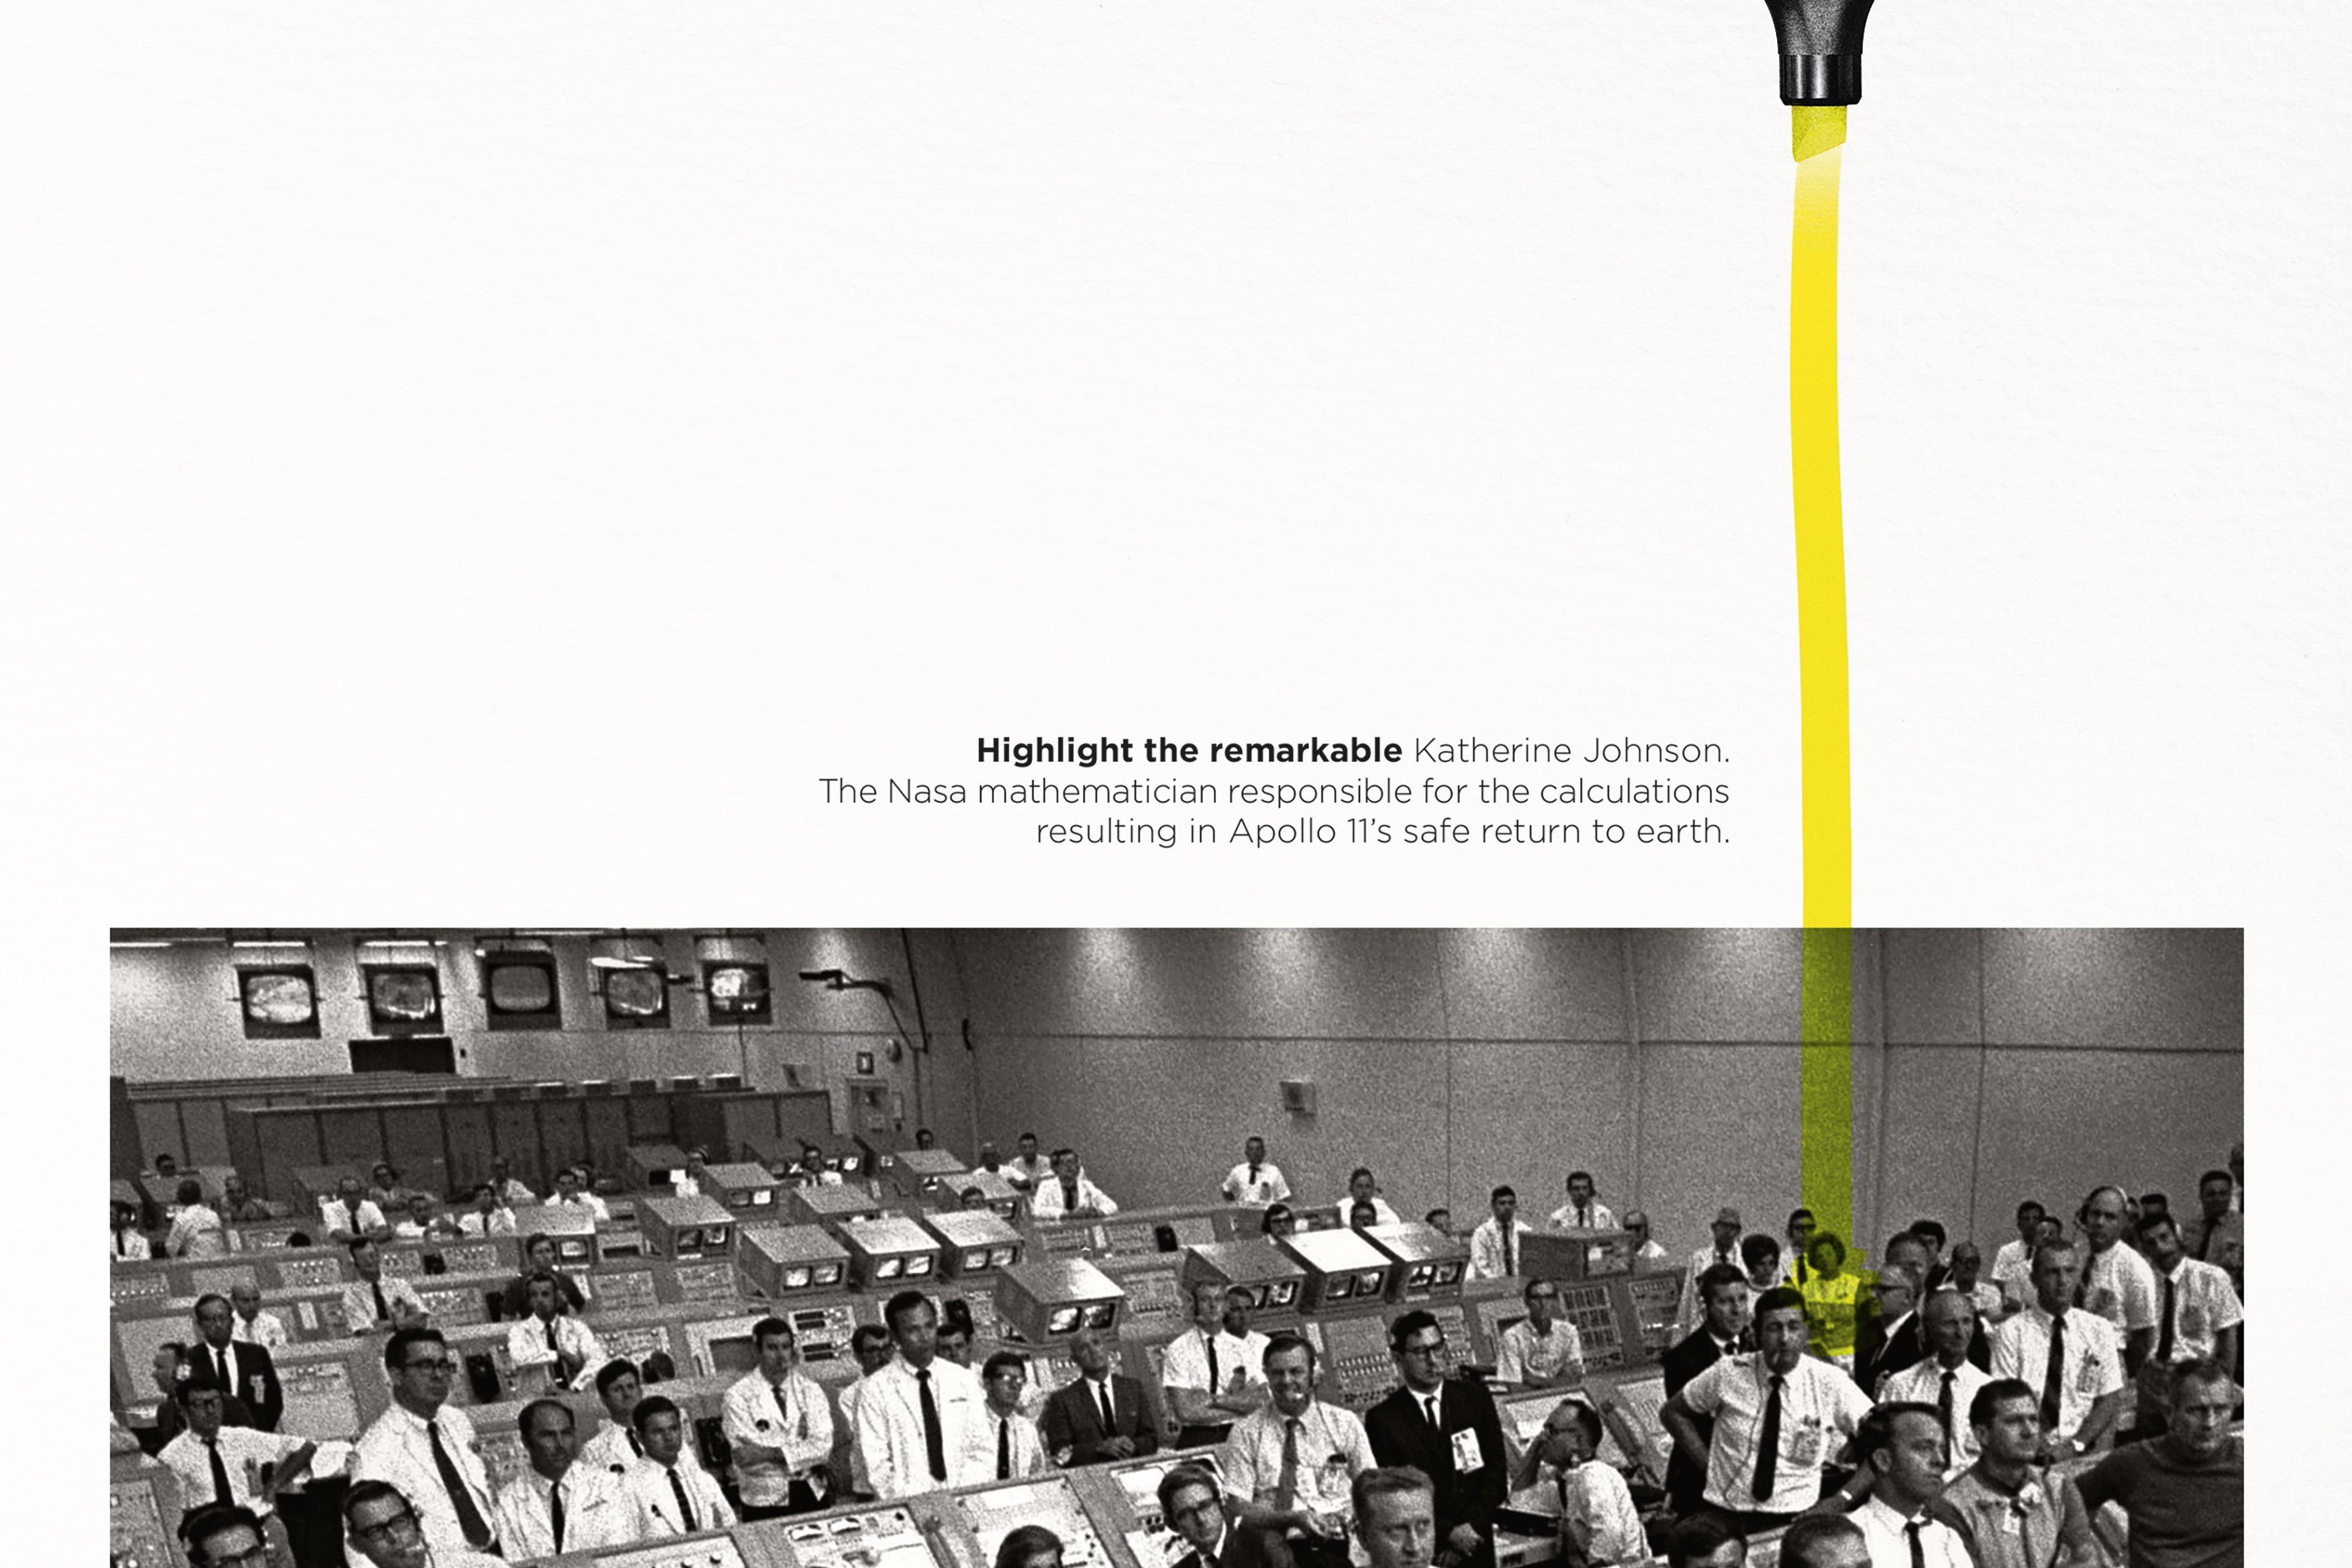 highlighter ad highlighting NASA mathematician Katherine Johnson for her contributions to the Apollo 11 mission